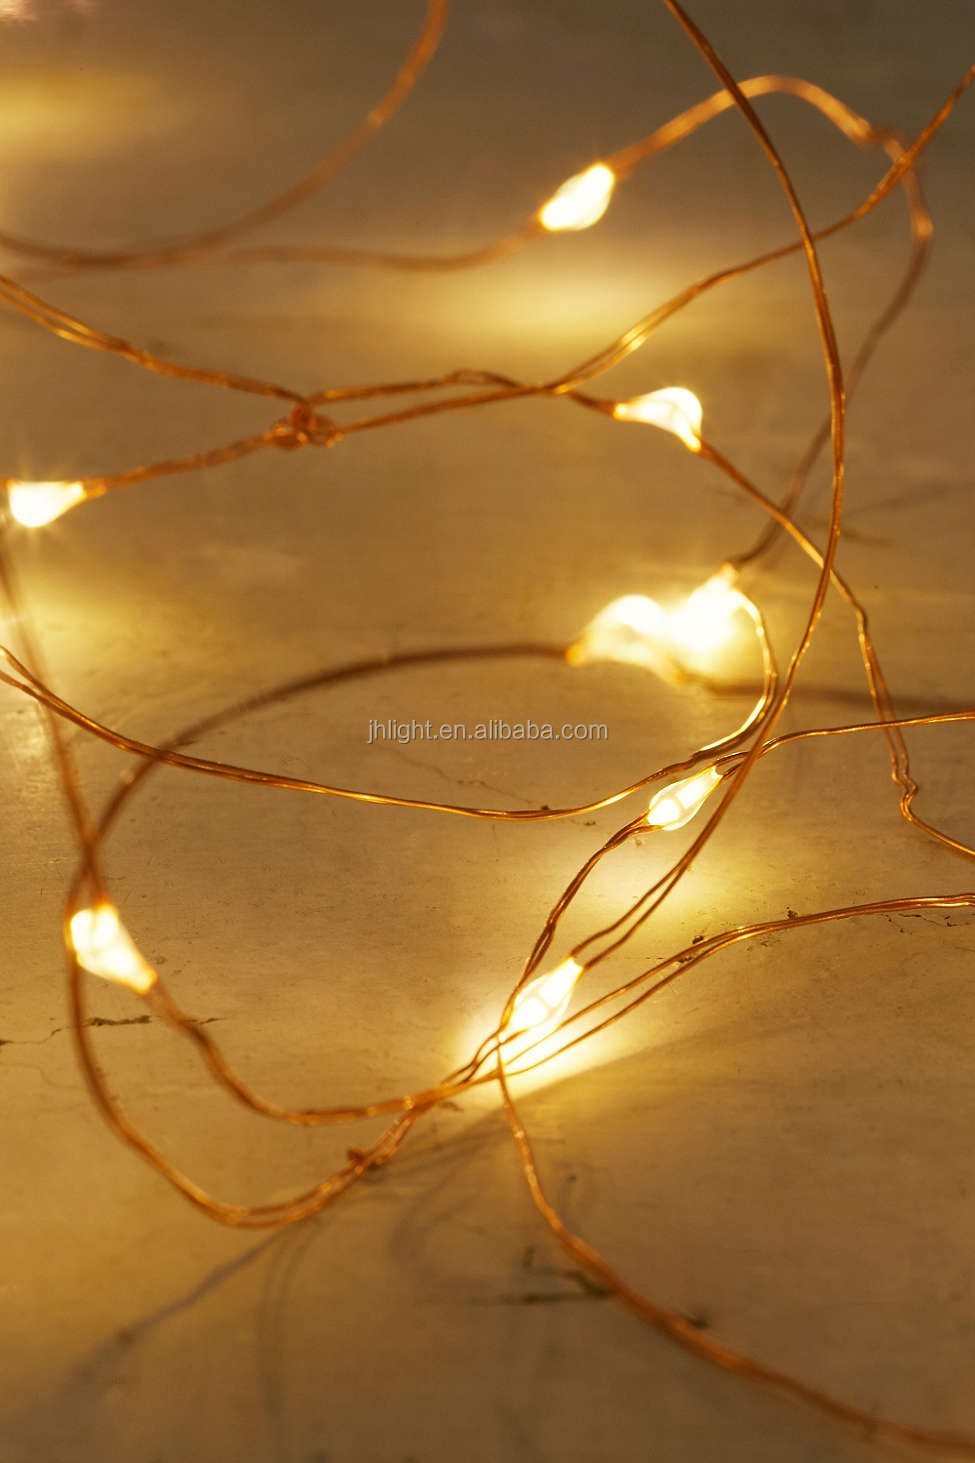 String Lights For Bedroom Diy : Firefly String Lights Diy Fancy Bedroom For Wedding Valentine s Day Events - Buy Bedroom ...